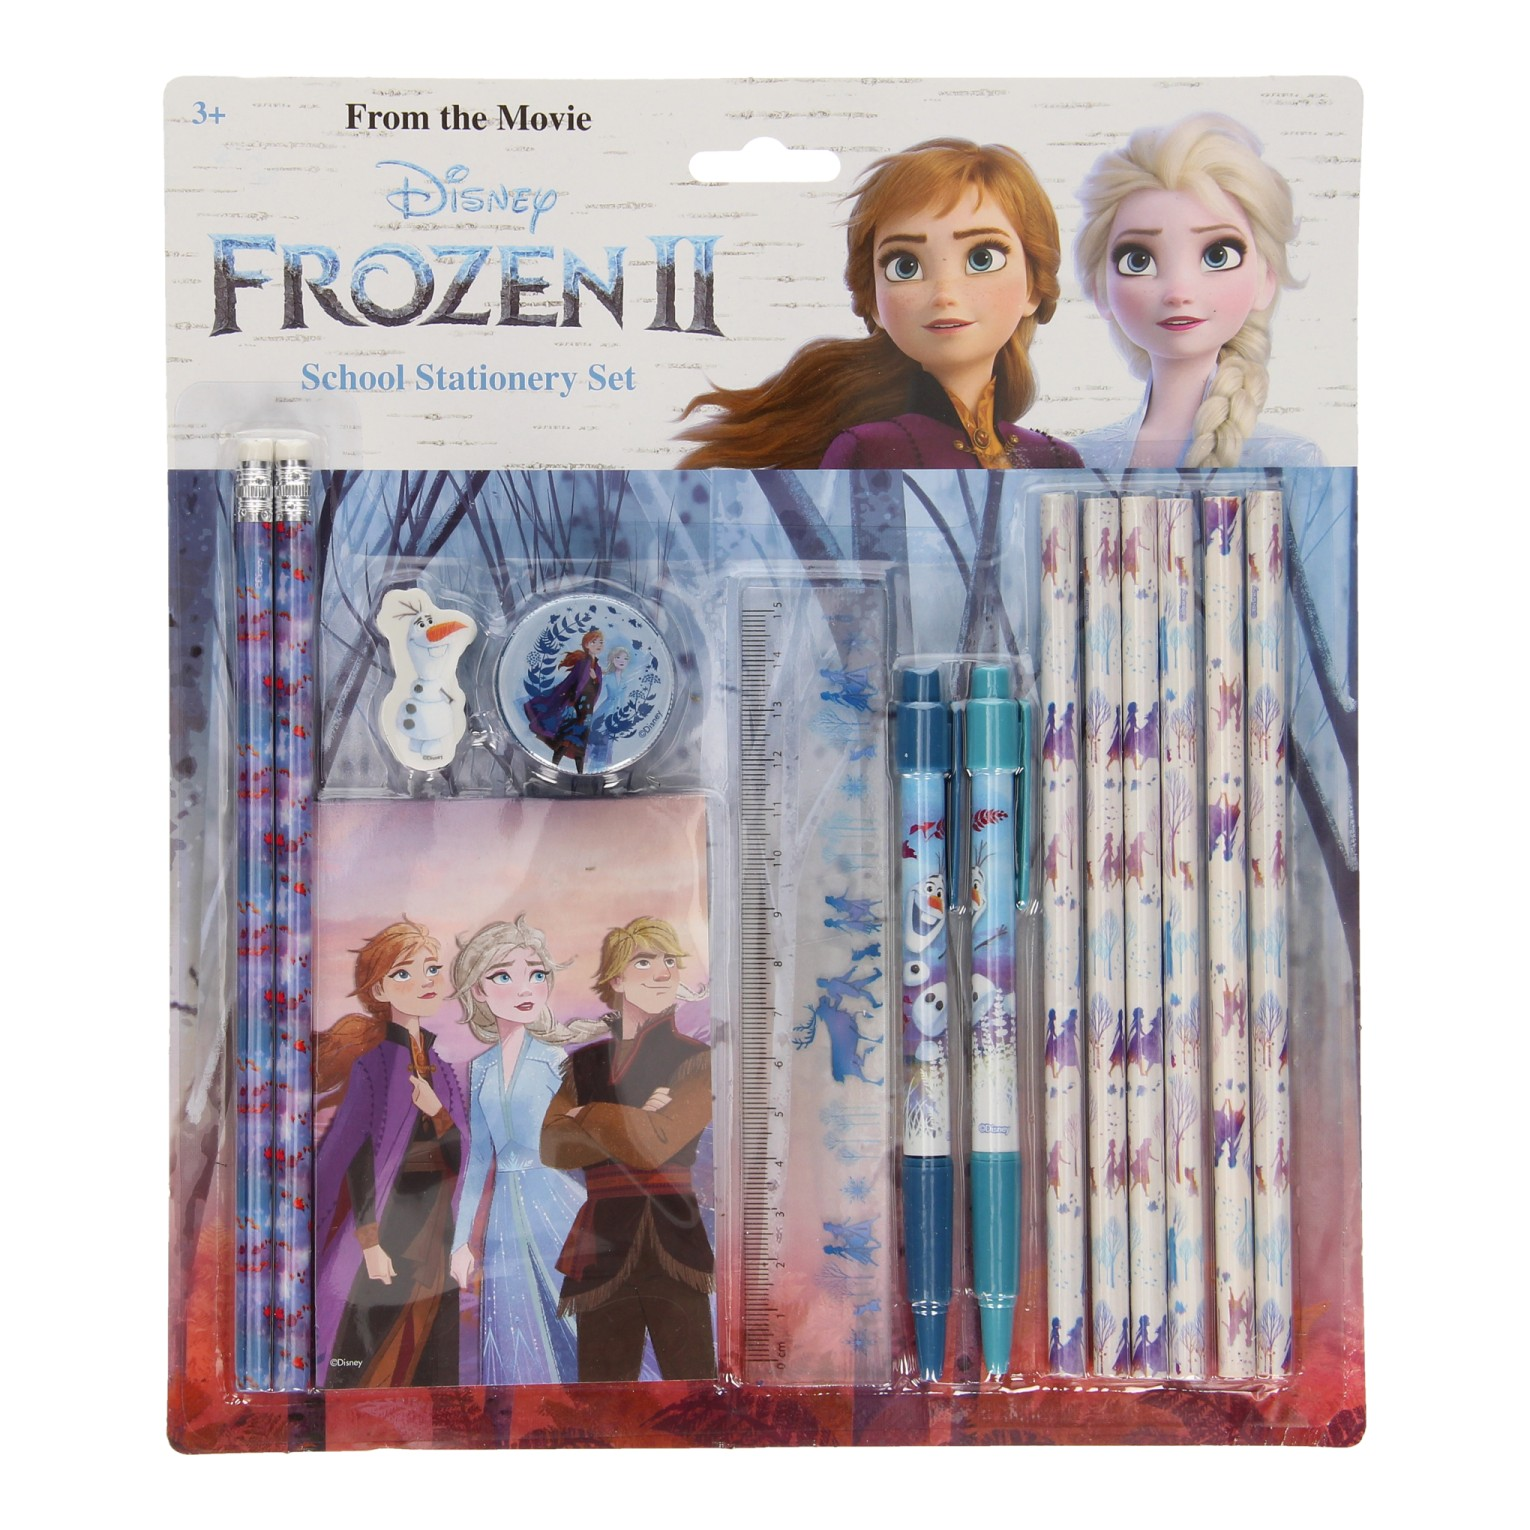 Frozen 2 School Stationary Set